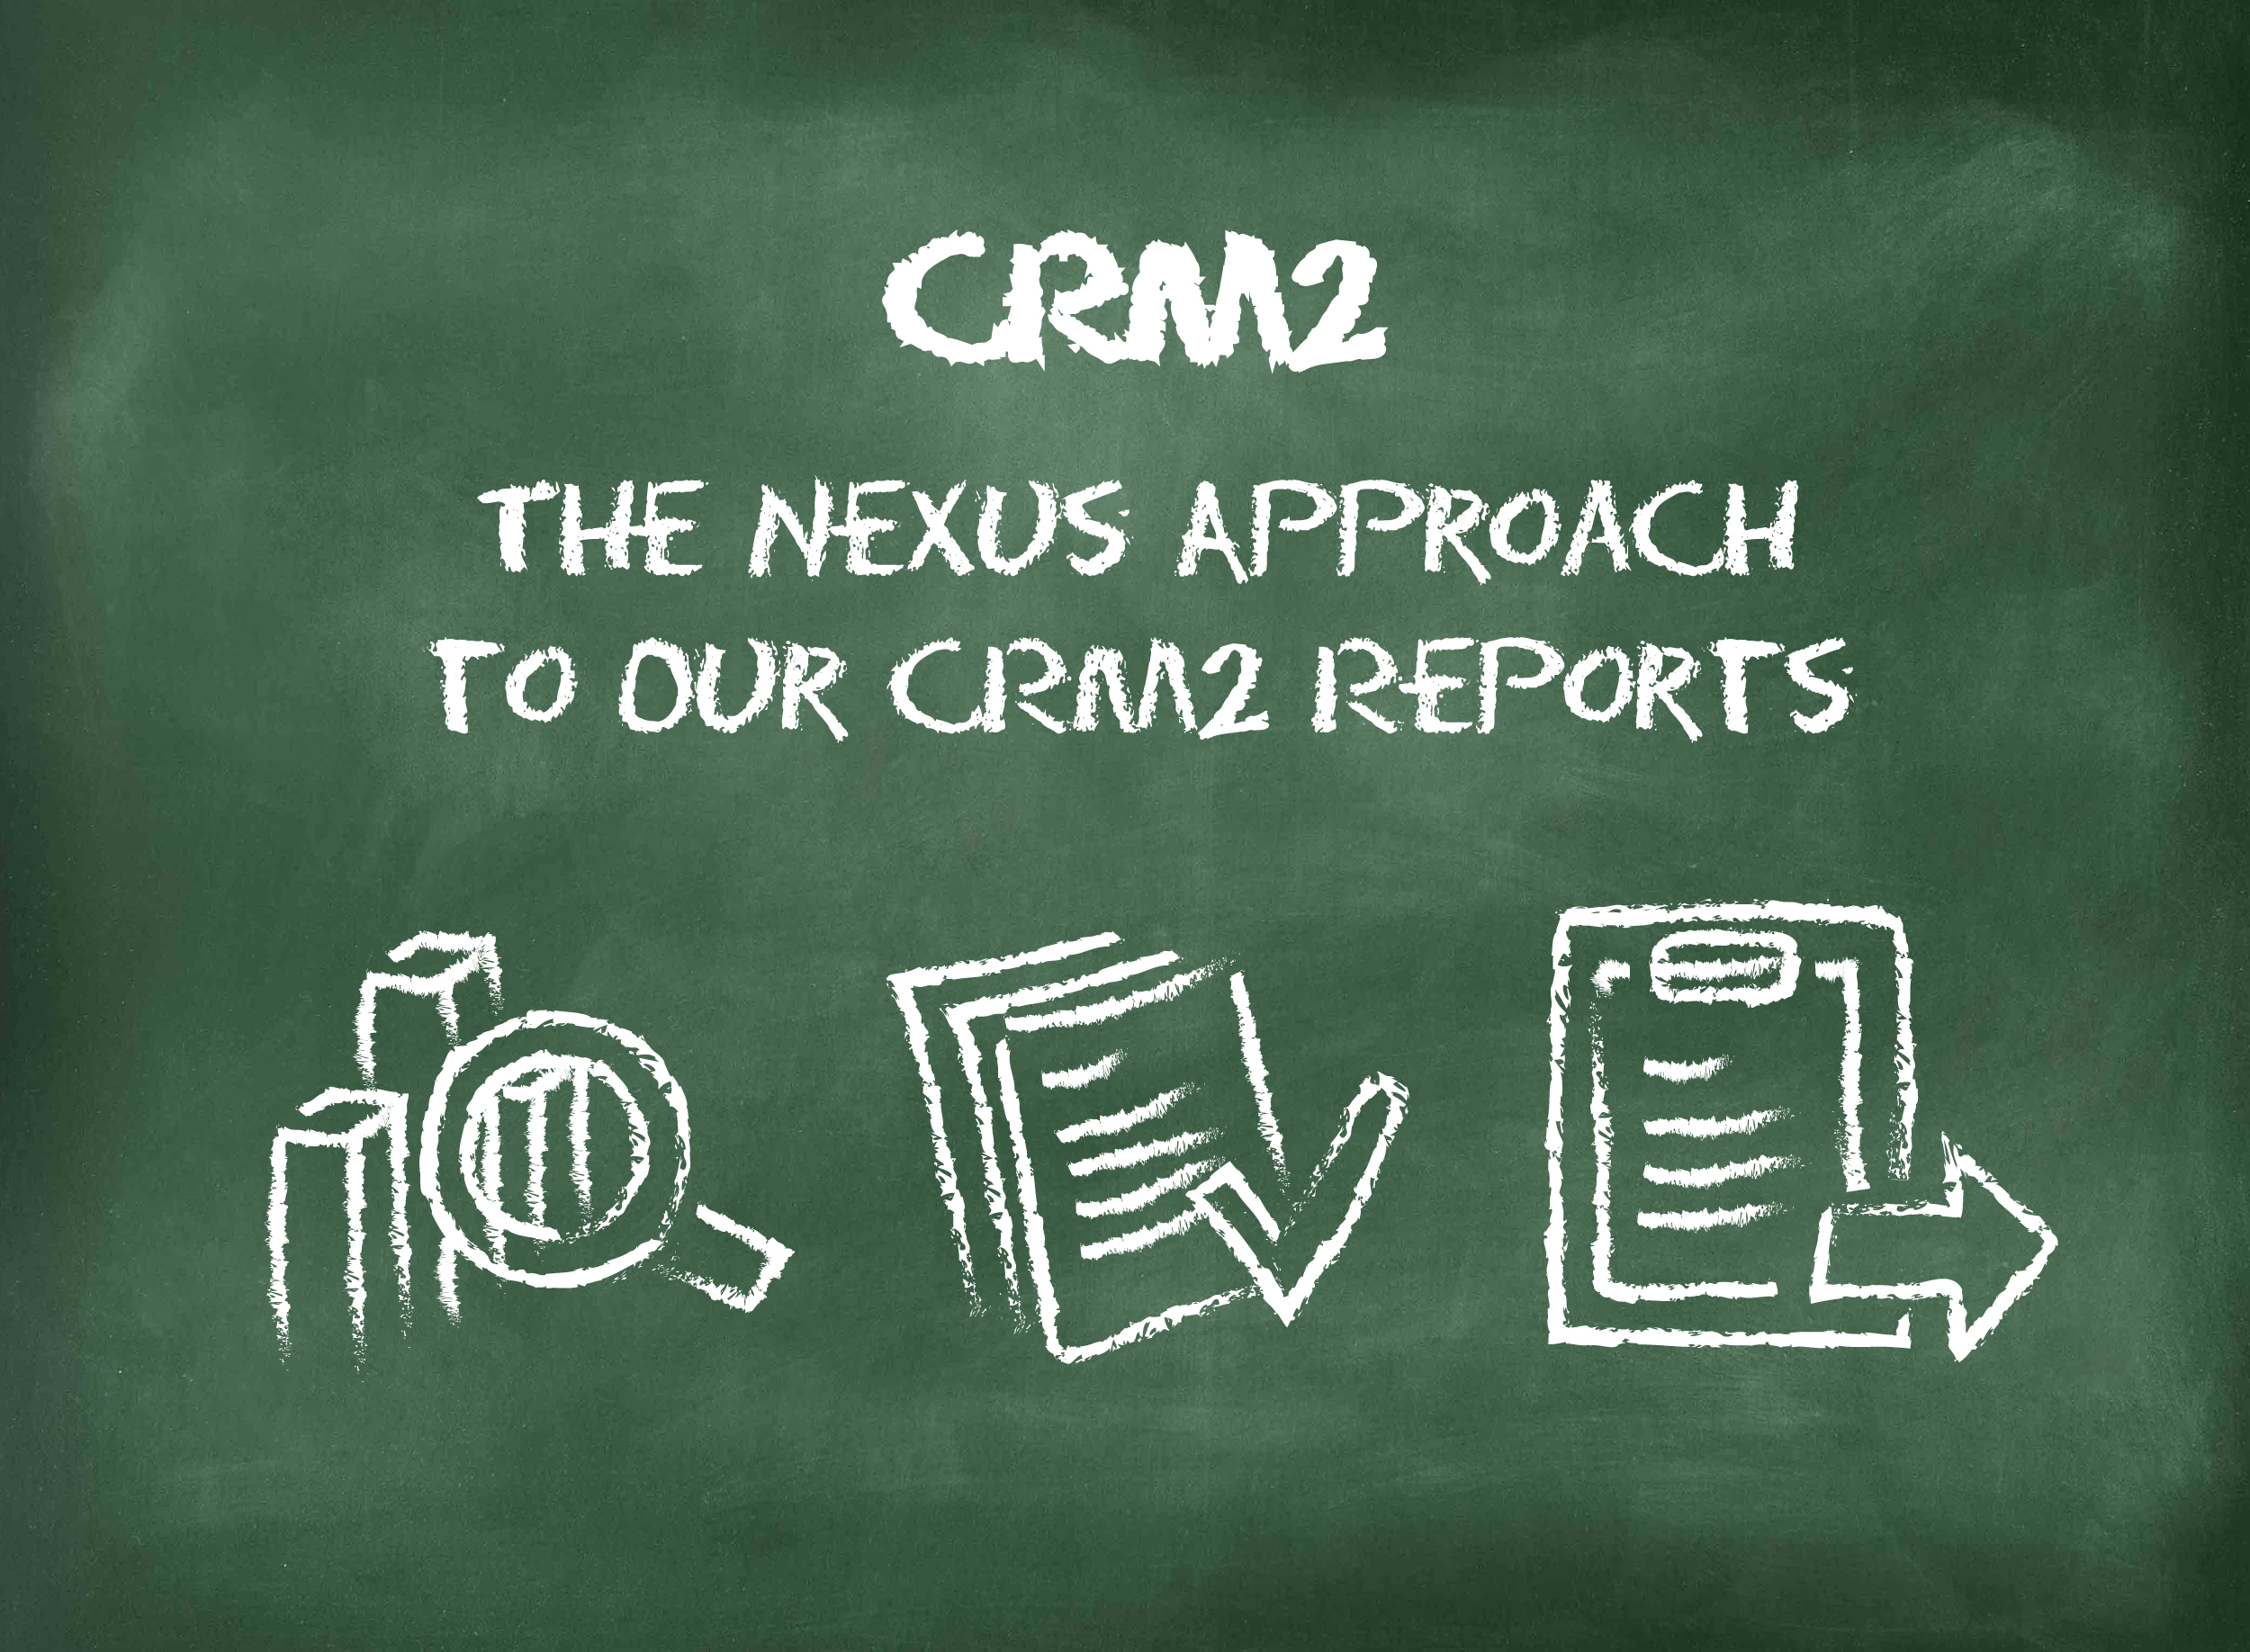 CRM2: The Nexus Approach to our CRM2 Reports